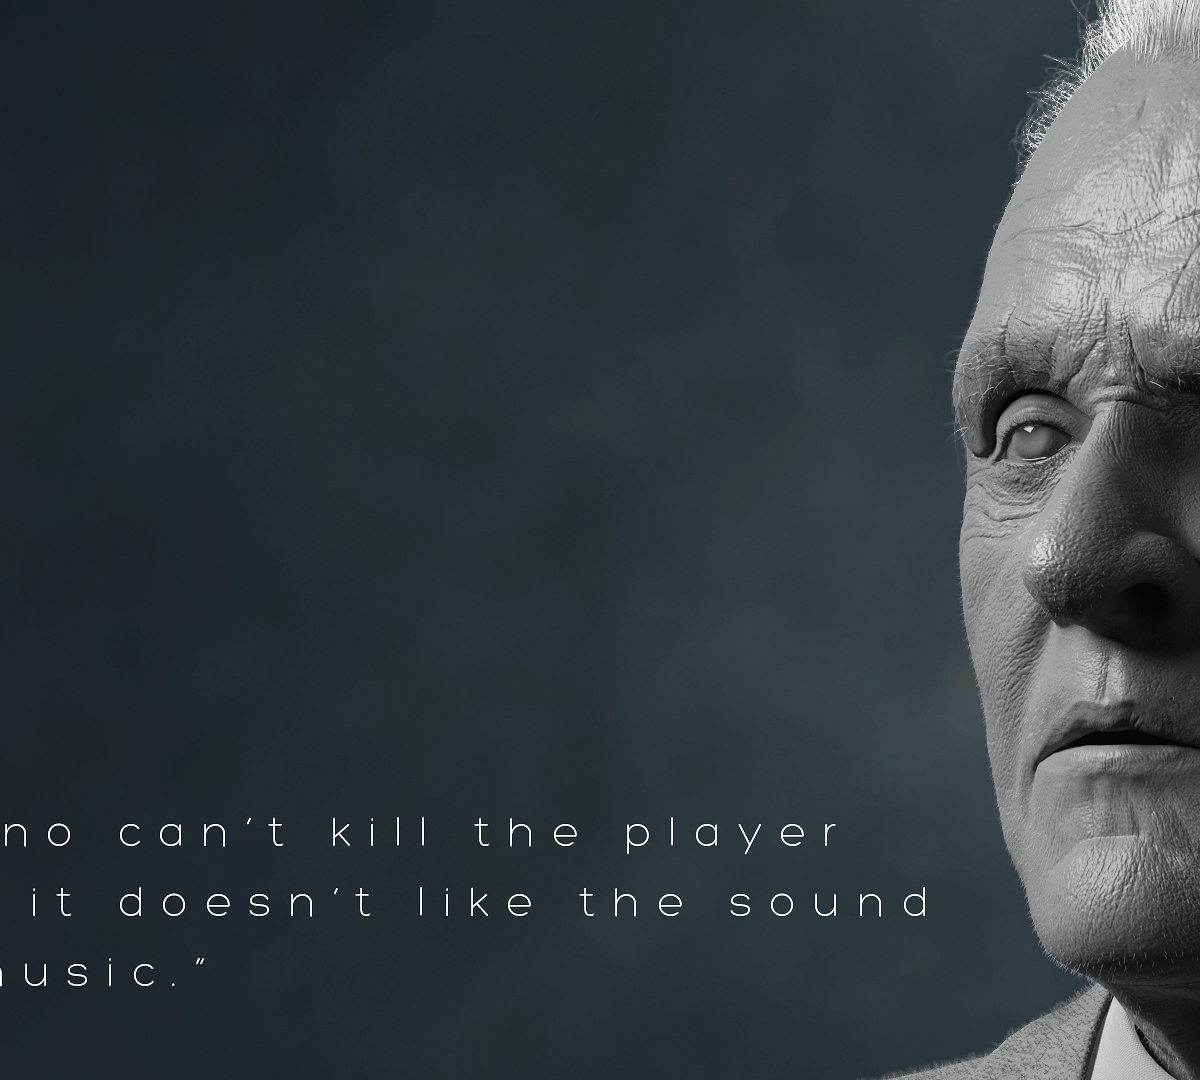 anthony_hopkins_by_hossimo_bg_model.jpg